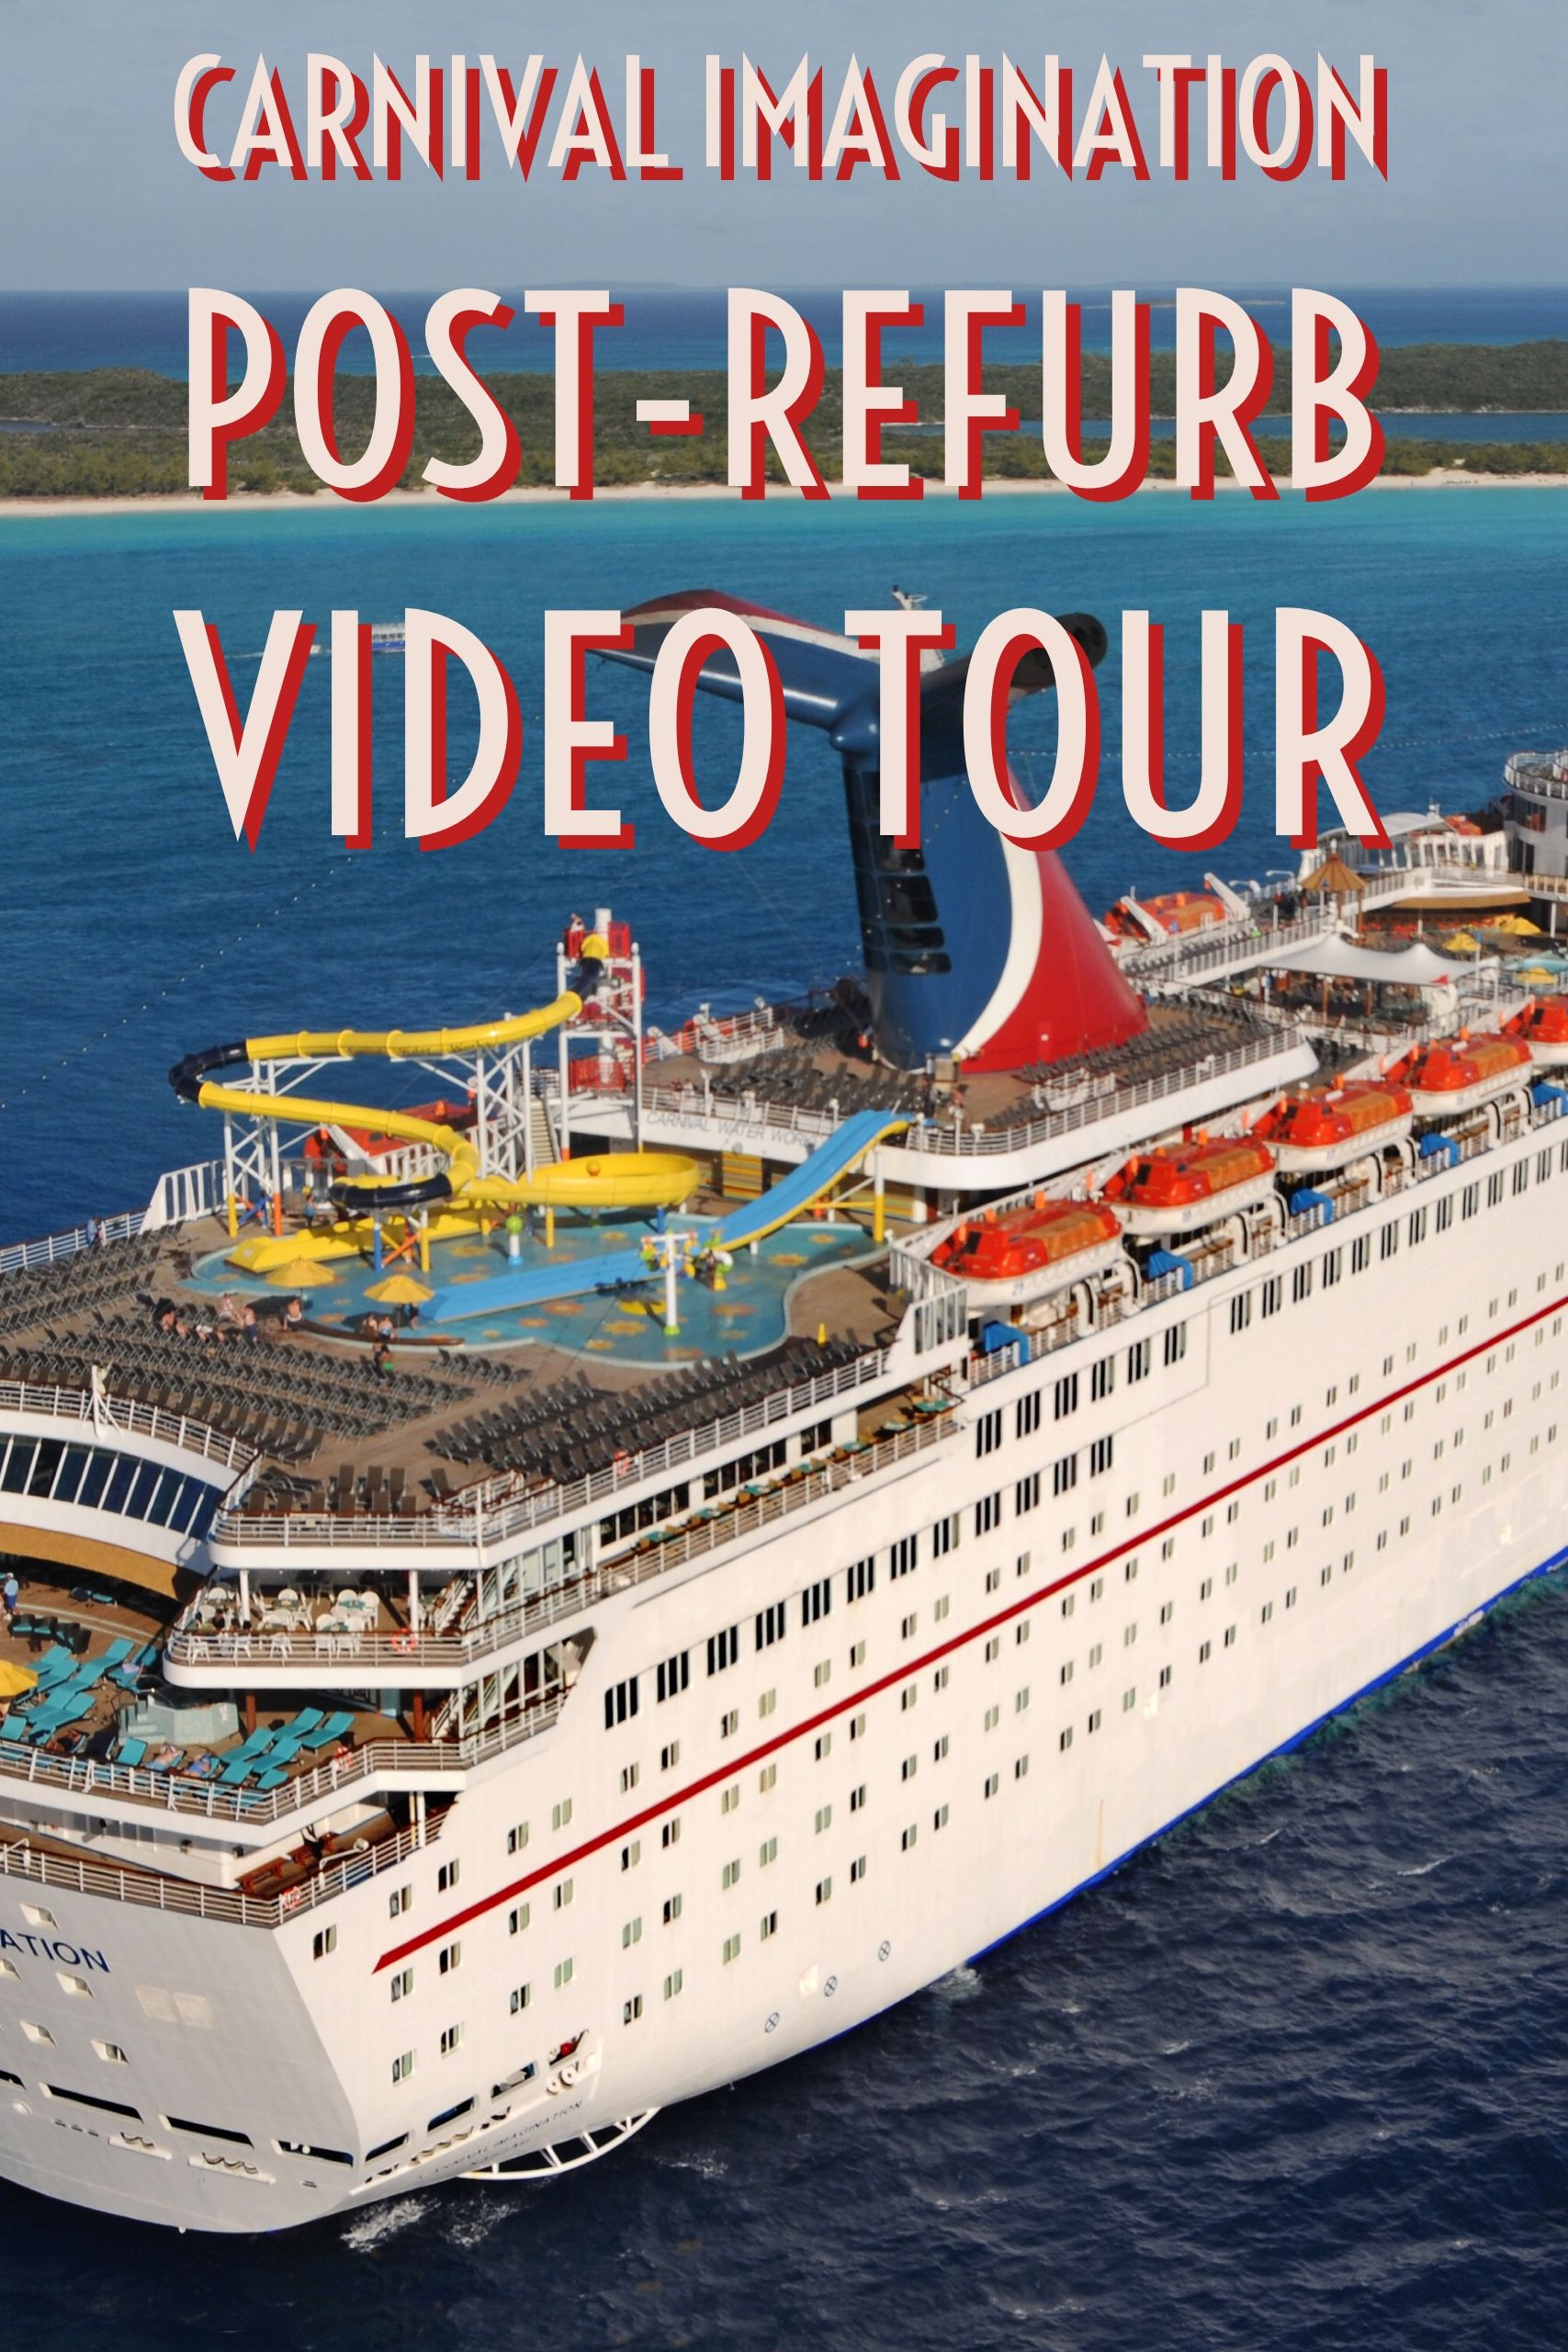 A Deck By Deck Tour Of The Newly Refurbished Carnival Imagination Cruise Ship Carnival Imagination Carnival Imagination Cruise Cruise Tips